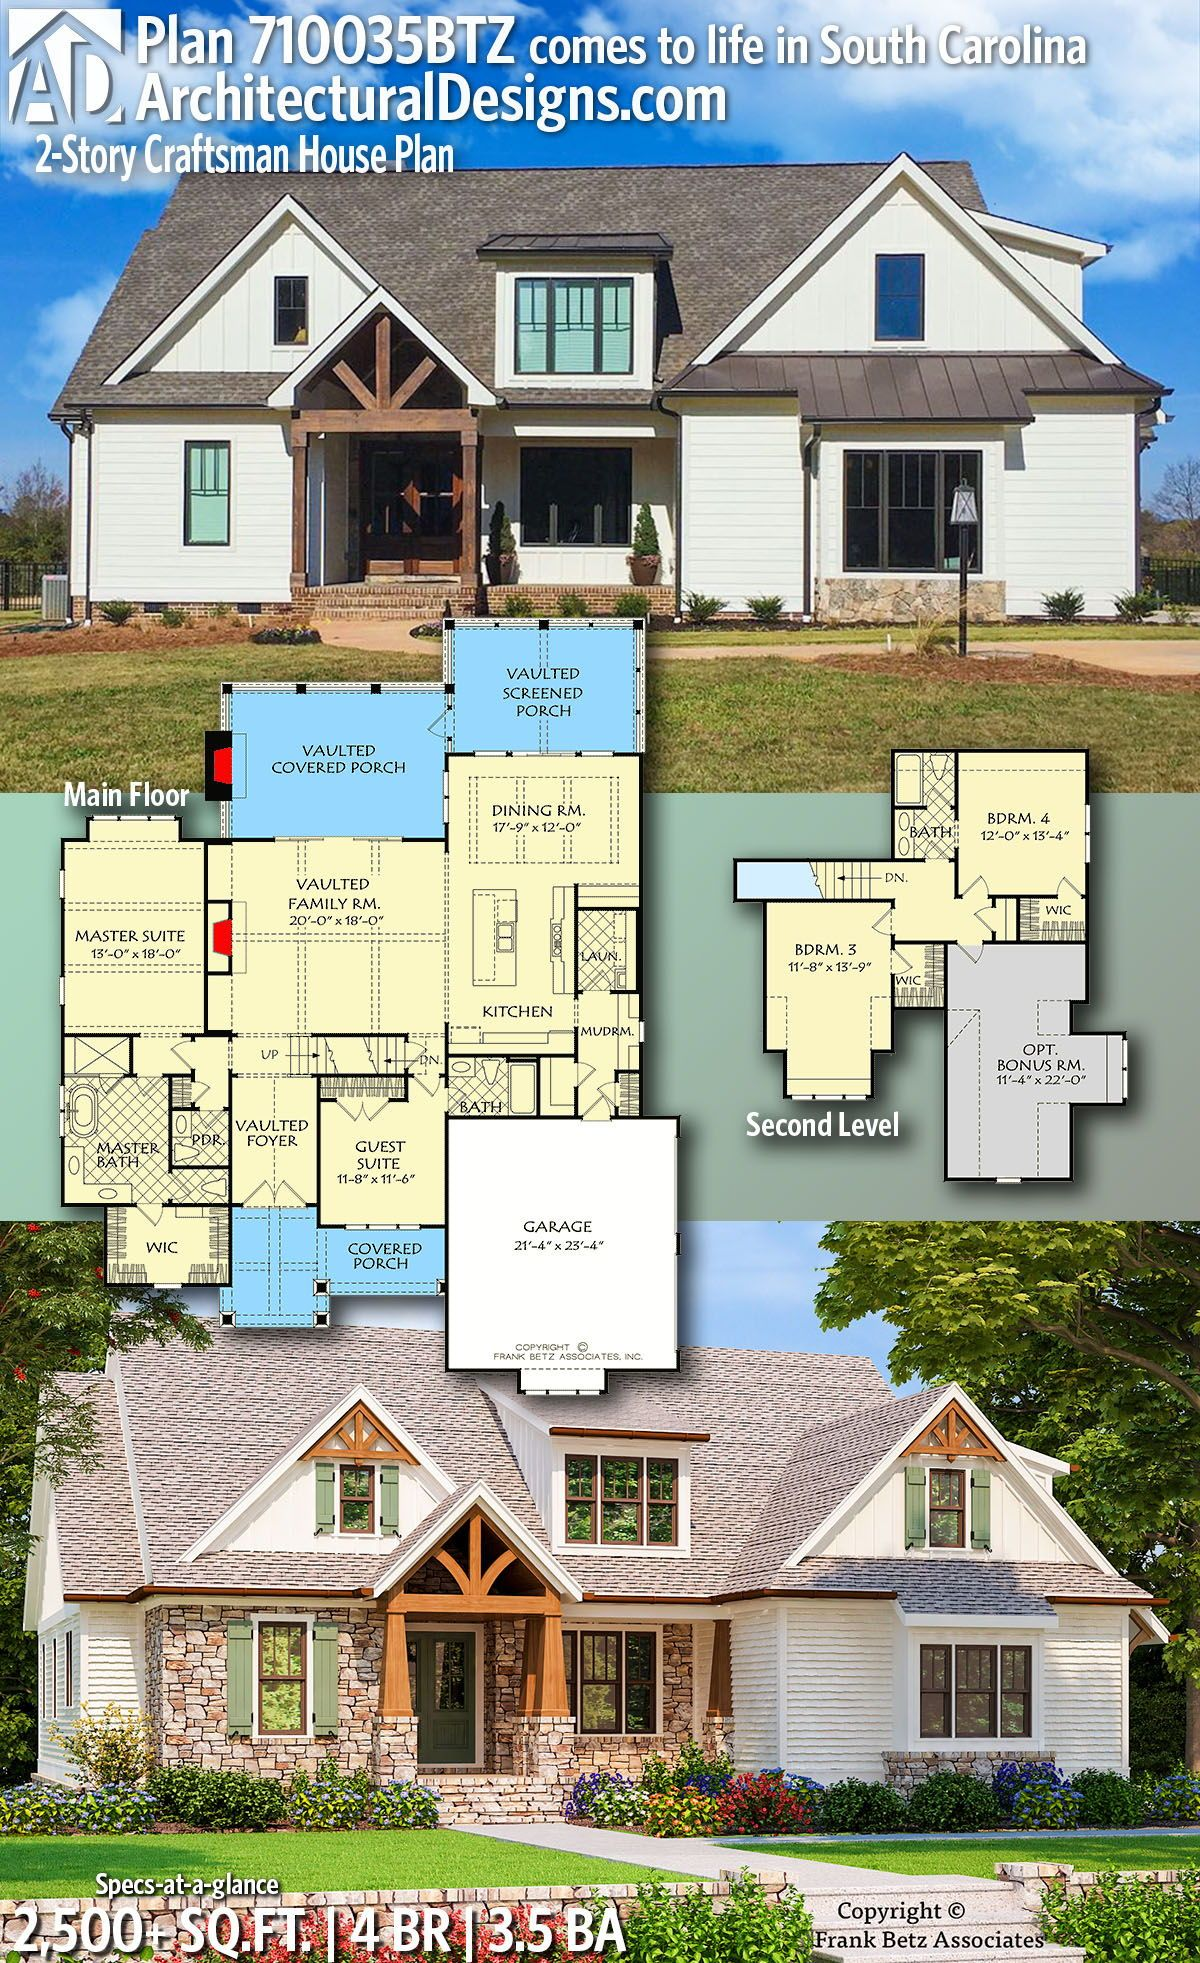 Building A Shed Dormer House Addition Ideas For Extra Living Space: Plan 710035BTZ: 2-Story Craftsman House Plan With Mixed Material Exterior In 2020 (With Images